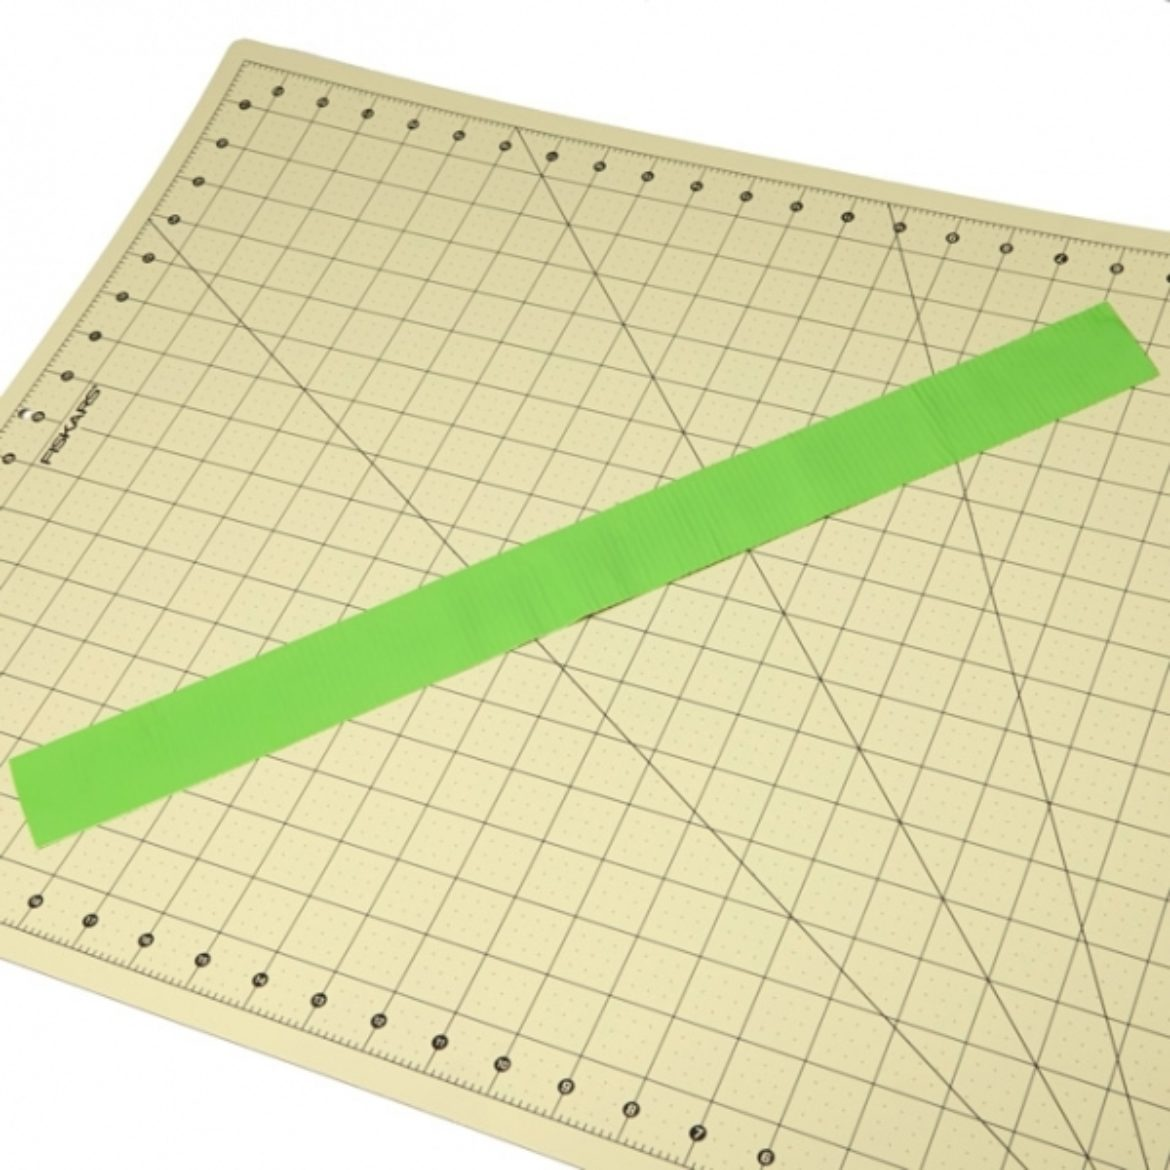 Strip of Duck Tape placed sticky side down on crafting board